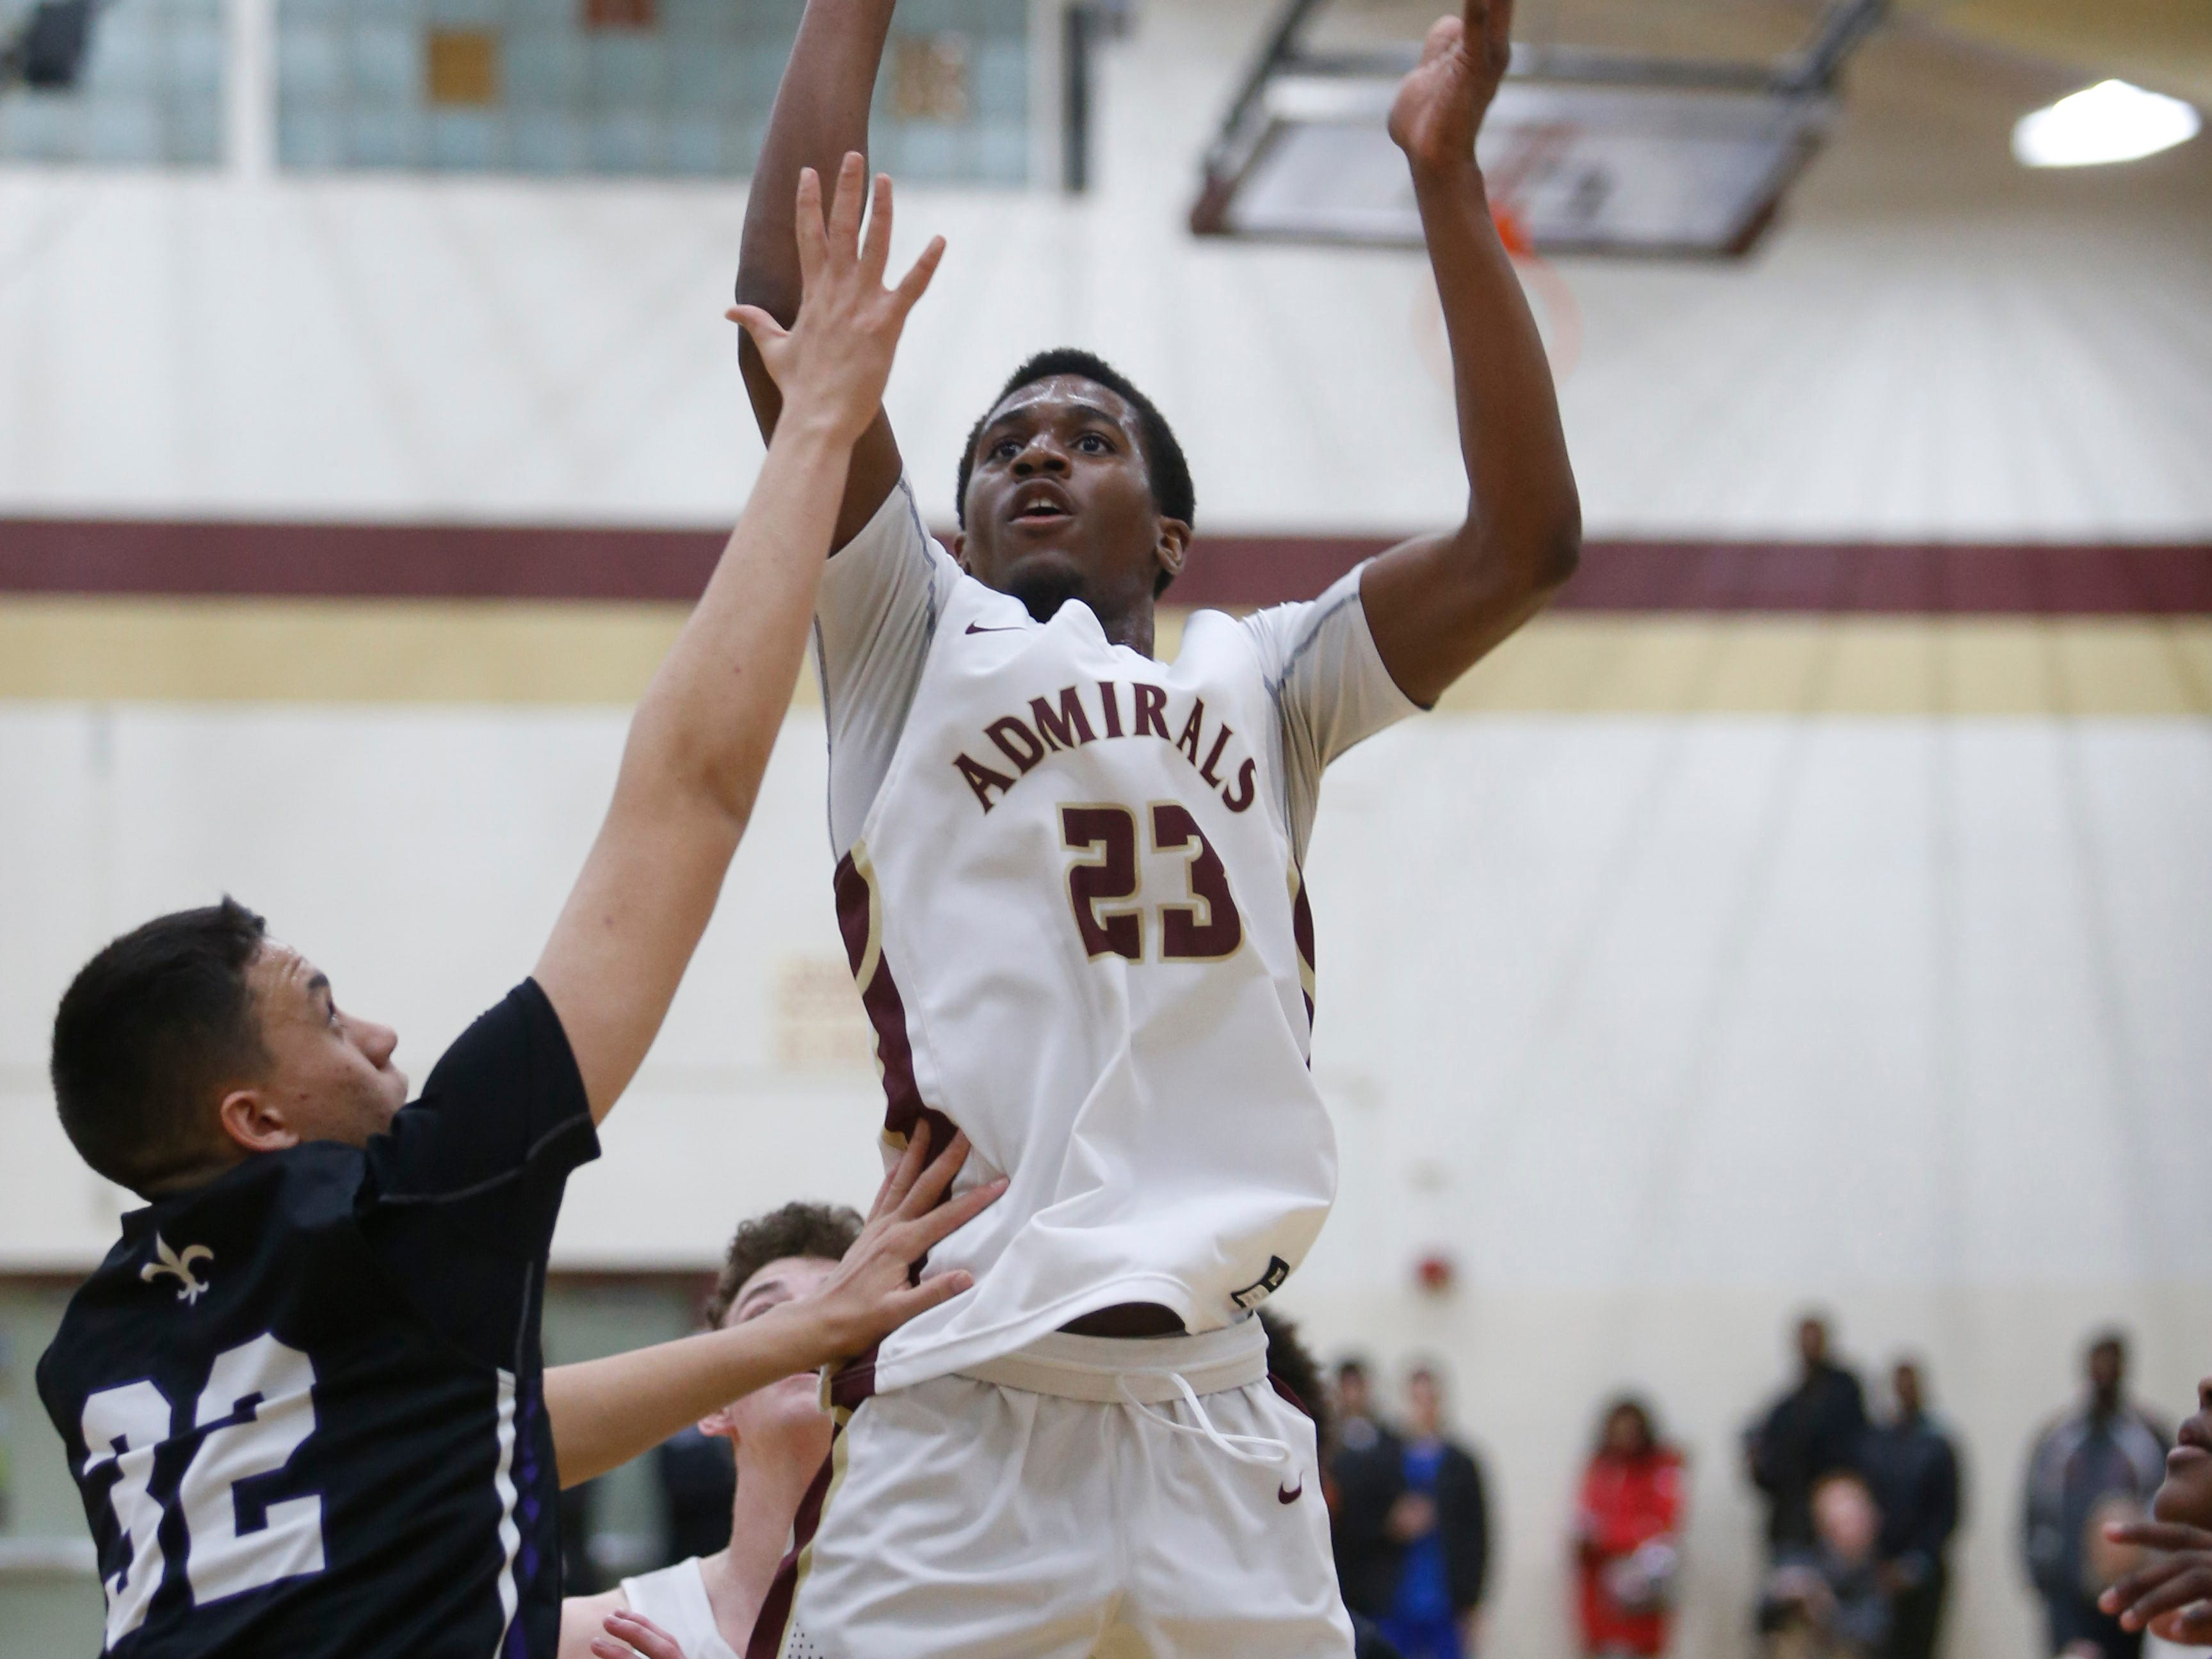 Action from Thursday's playoff game between Arlington and New Rochelle in Freedom Plains on February 21, 2019.